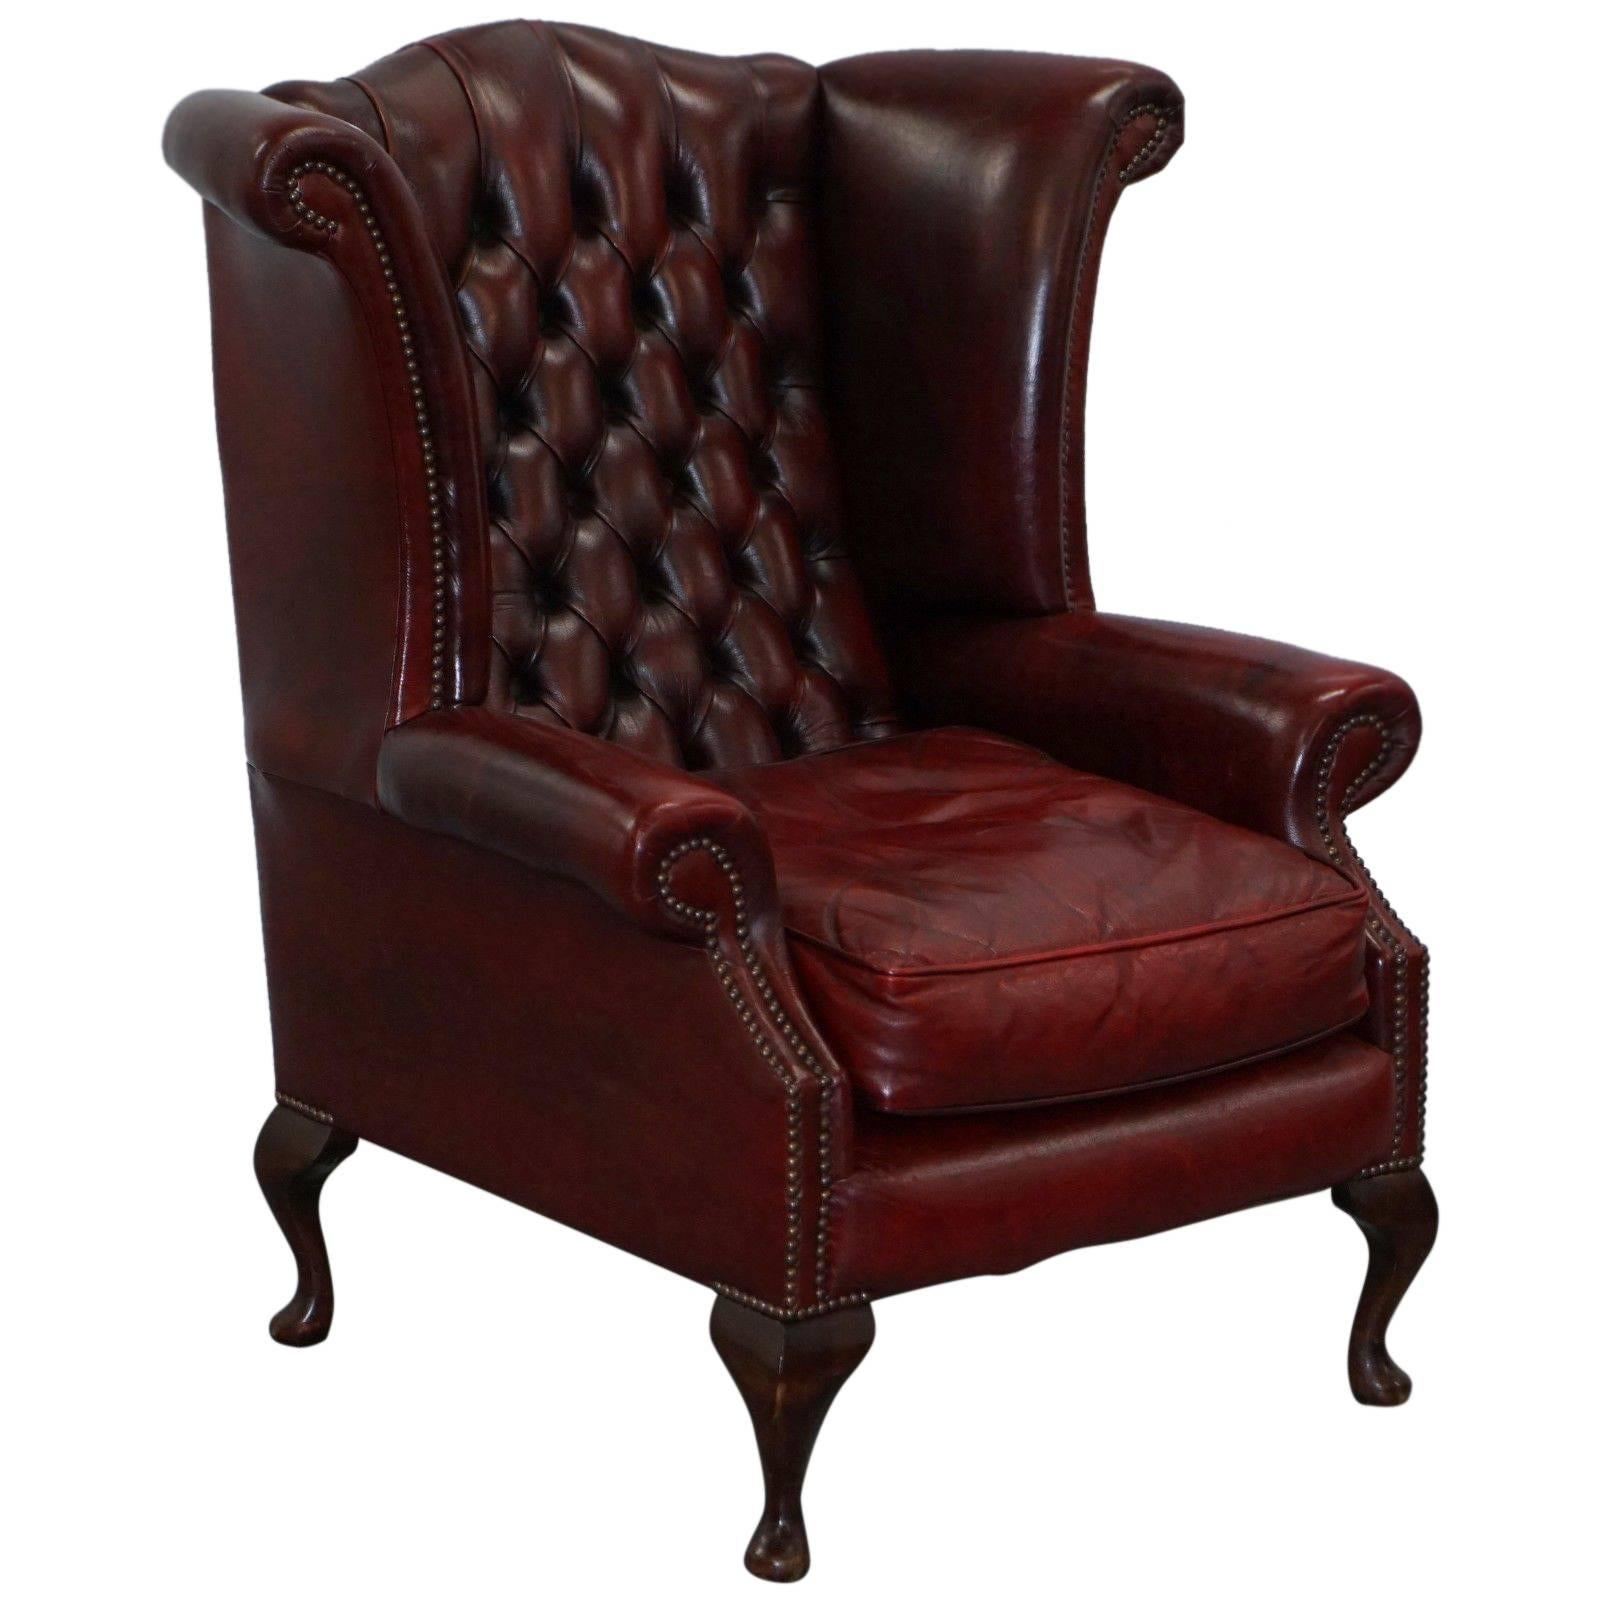 oxblood leather wing chair colorful lawn chairs large comfortable chesterfield queen anne wingback armchair for sale